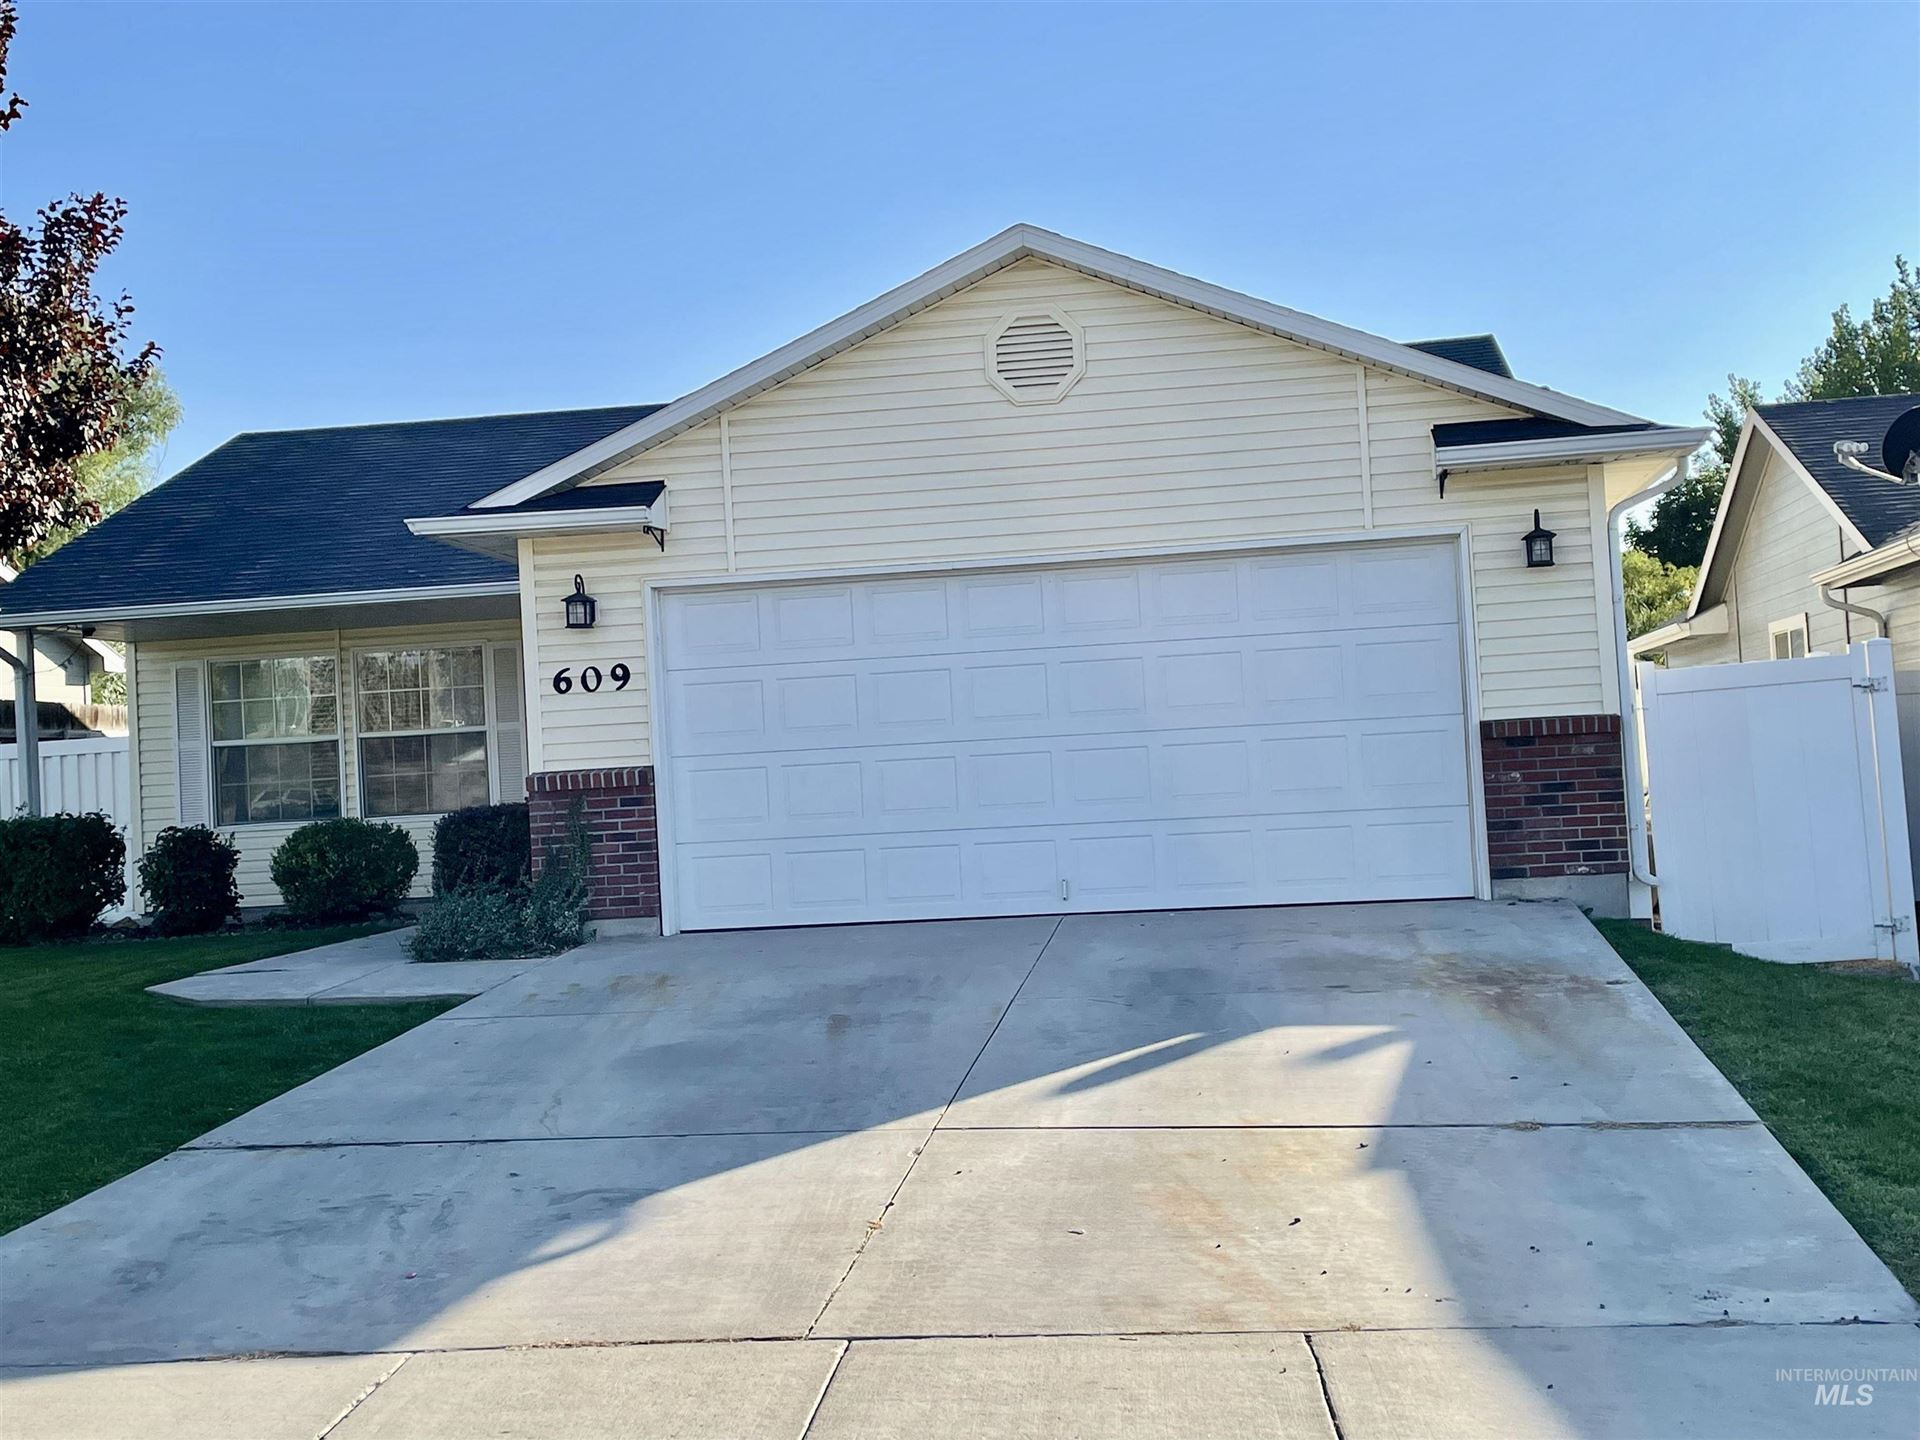 609 Whitley Court, Fruitland, ID 83619 - MLS#: 98817895